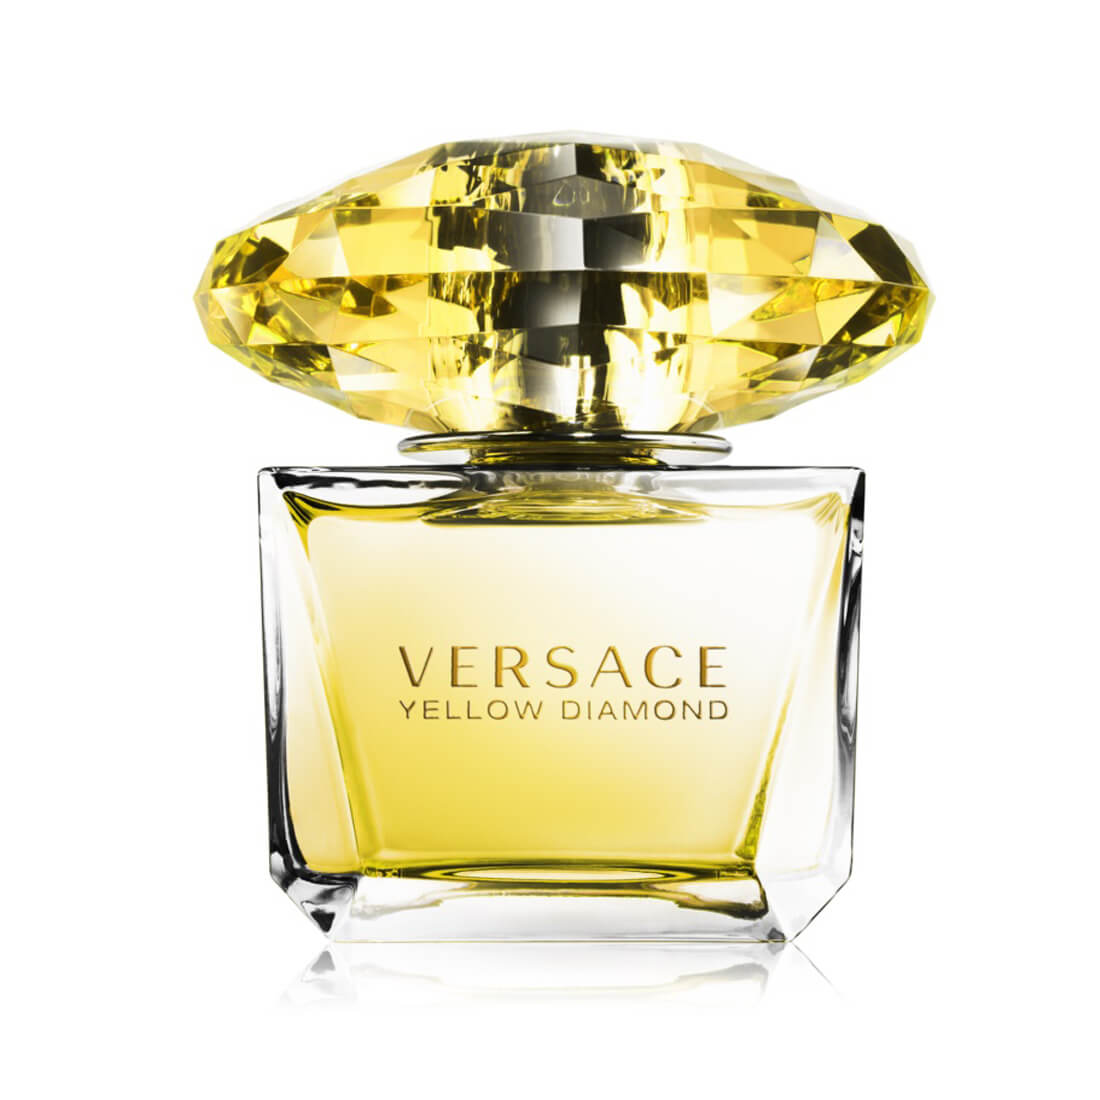 Versace Yellow Diamond Perfume For Women - 90ml